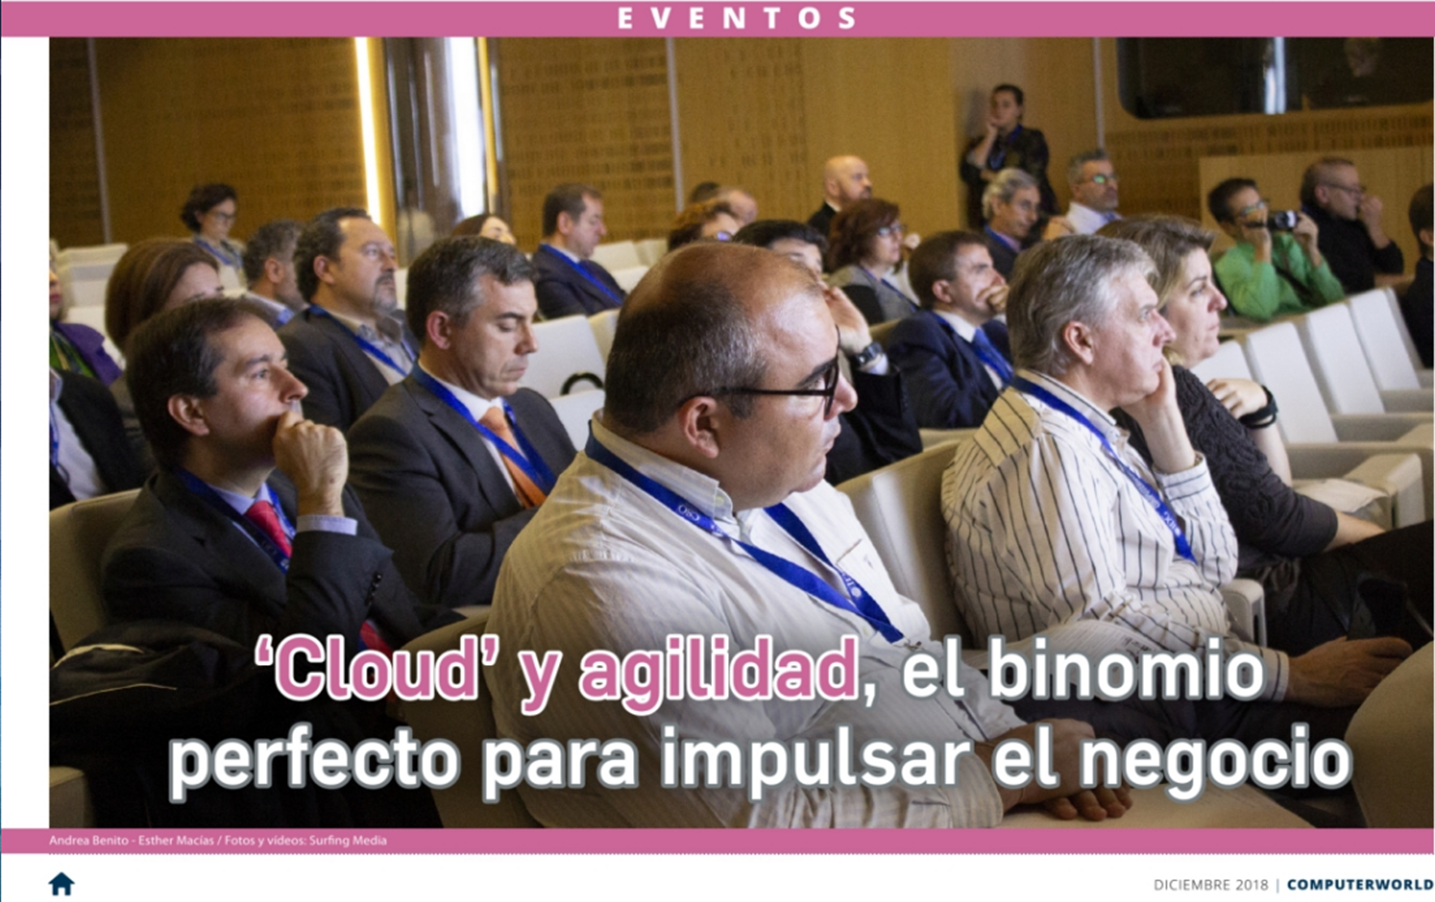 Reportaje Cloud ágil 2018